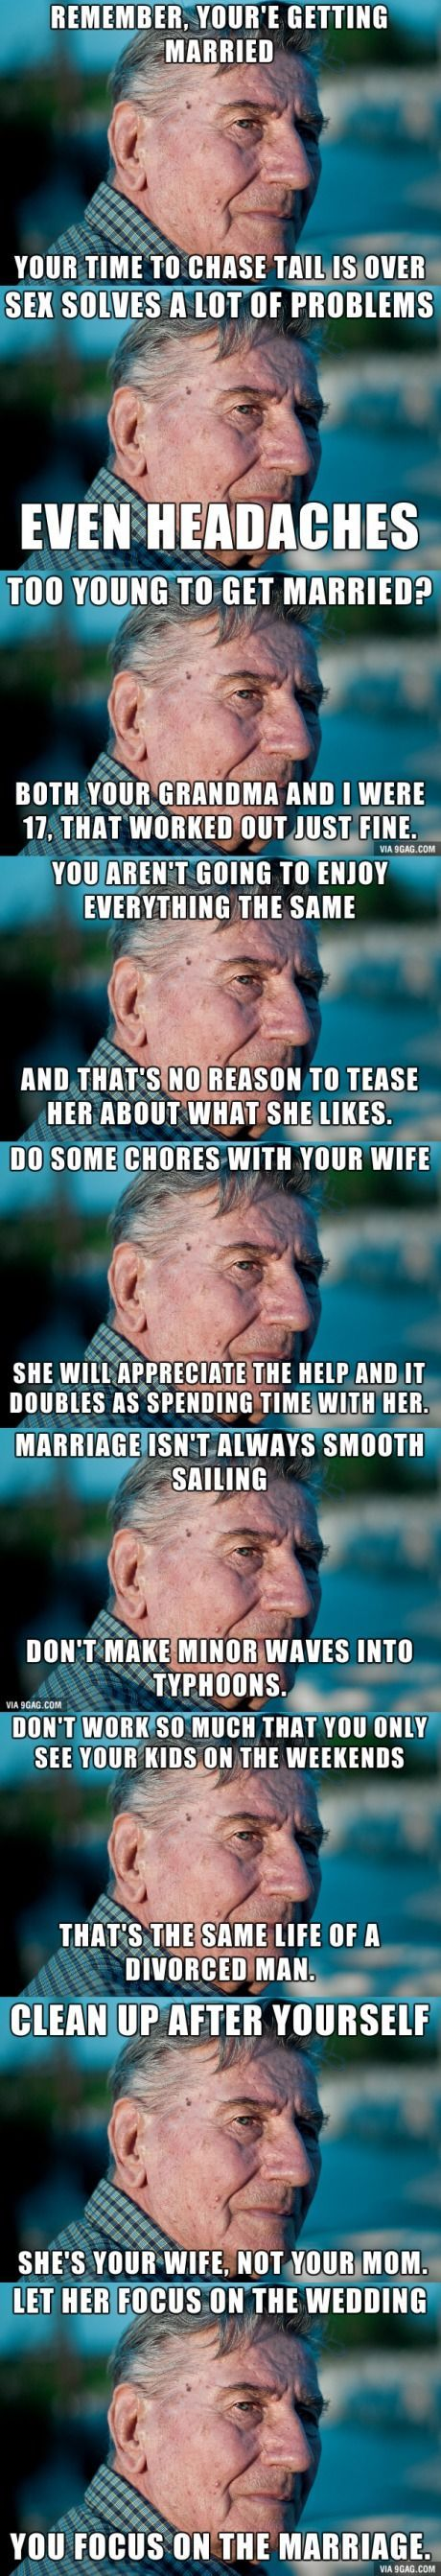 9 Best Marriage Advice - Funny